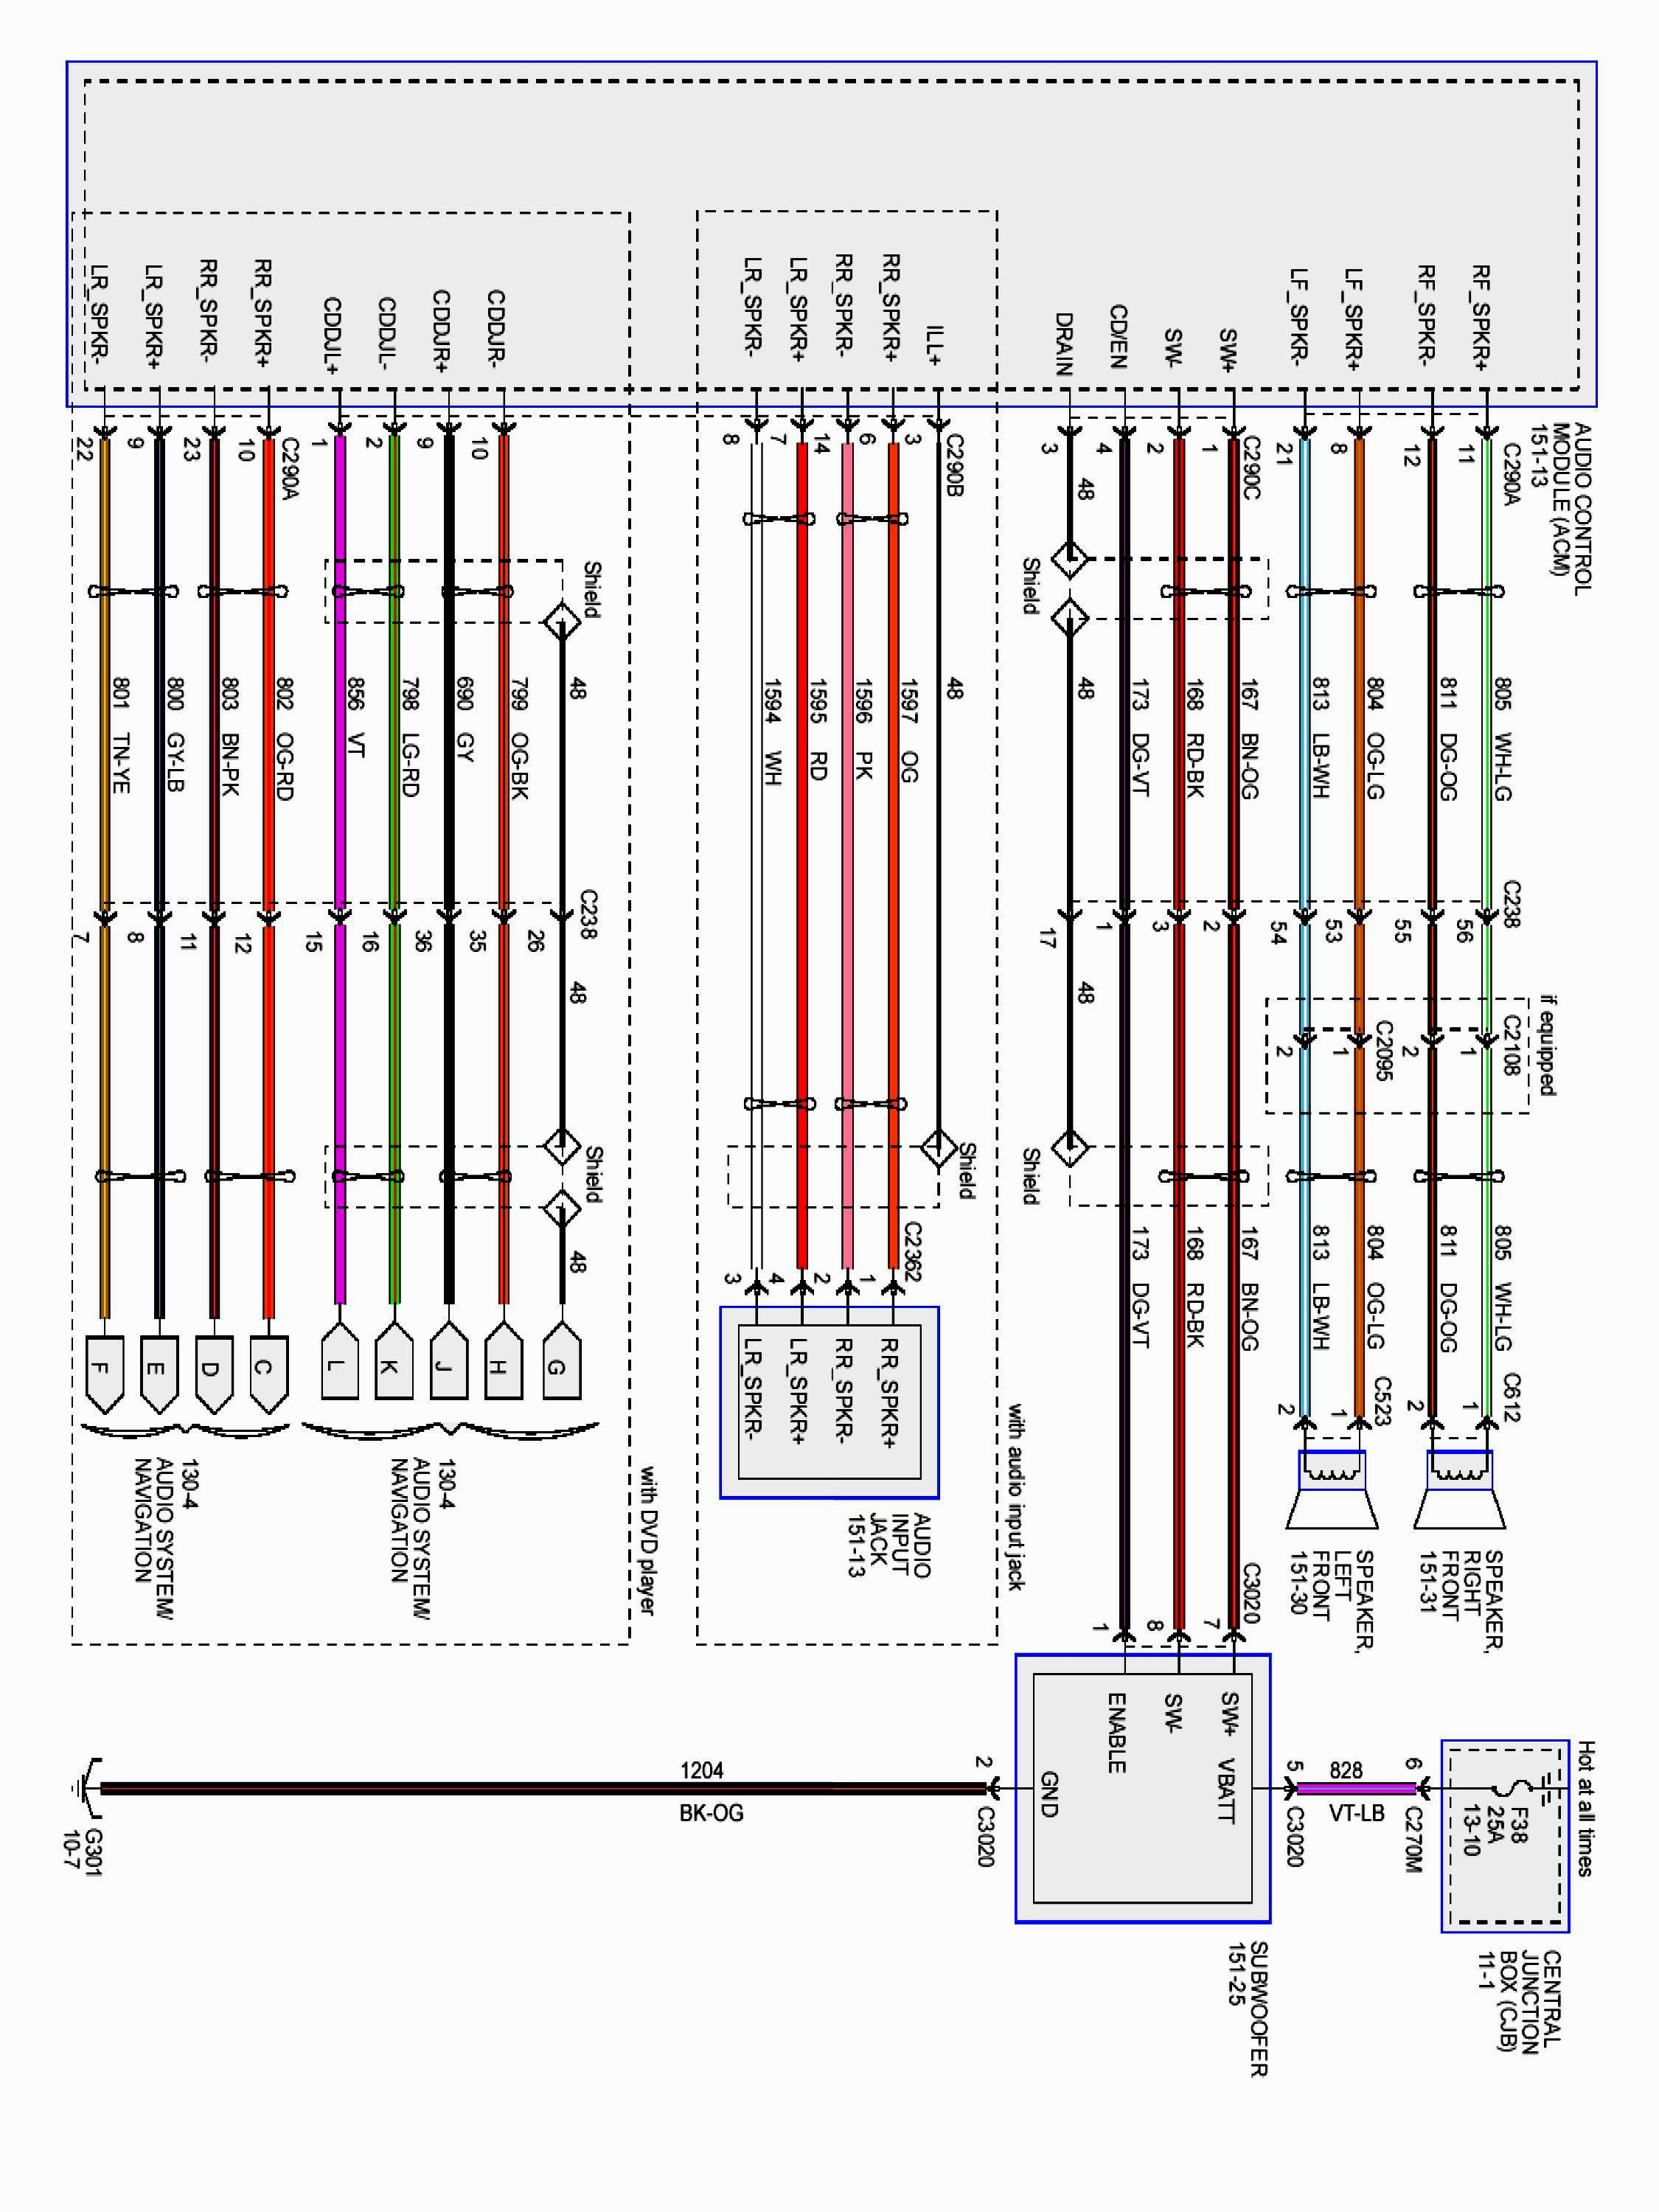 ford econoline radio wiring diagram Collection-Wiring Diagram 2001 Ford E350  Radio F250 For F150. DOWNLOAD. Wiring Diagram ...